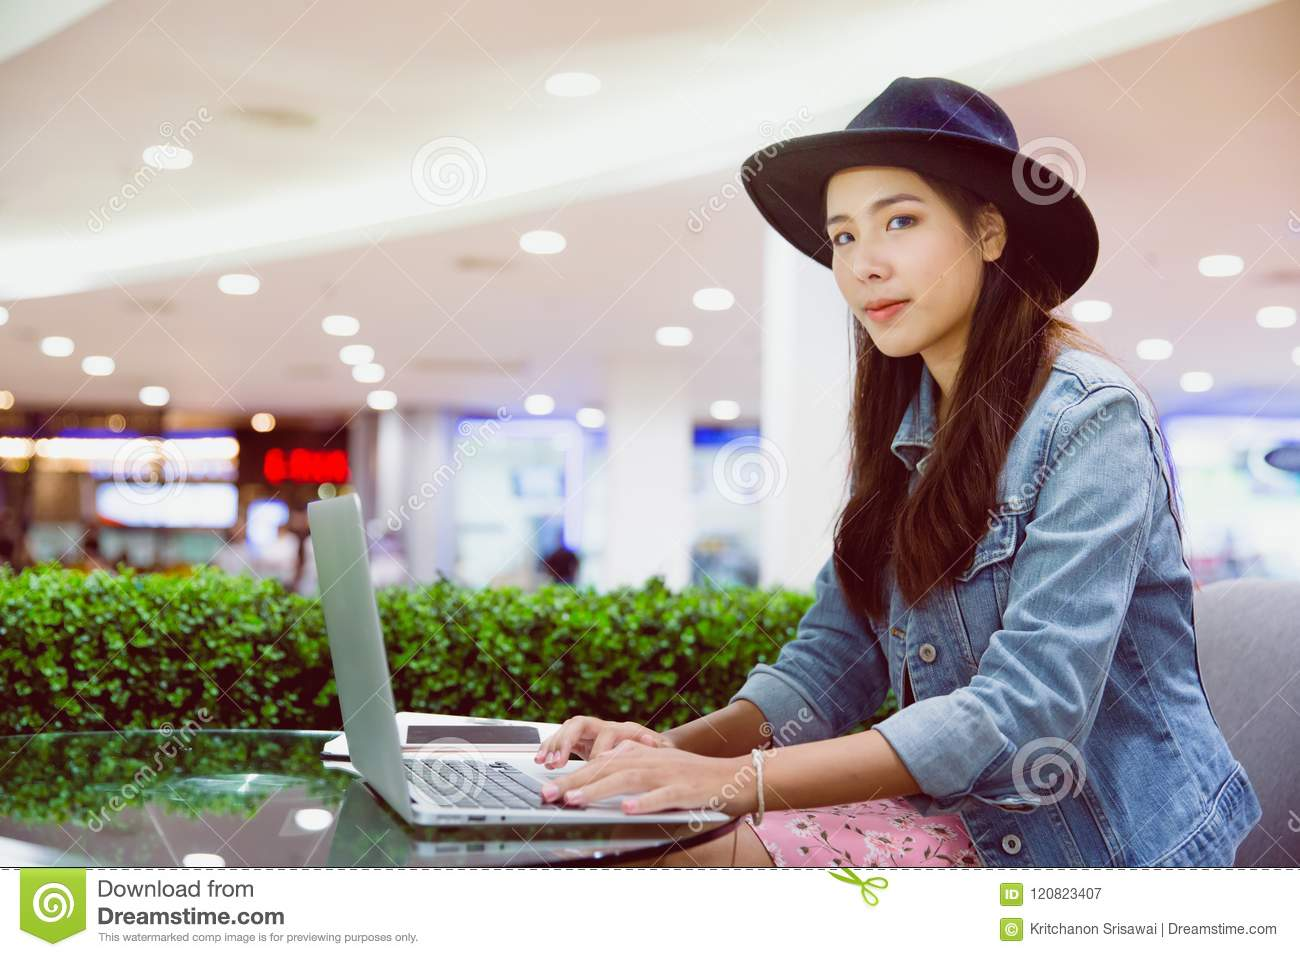 A young freelancer working in the workplace